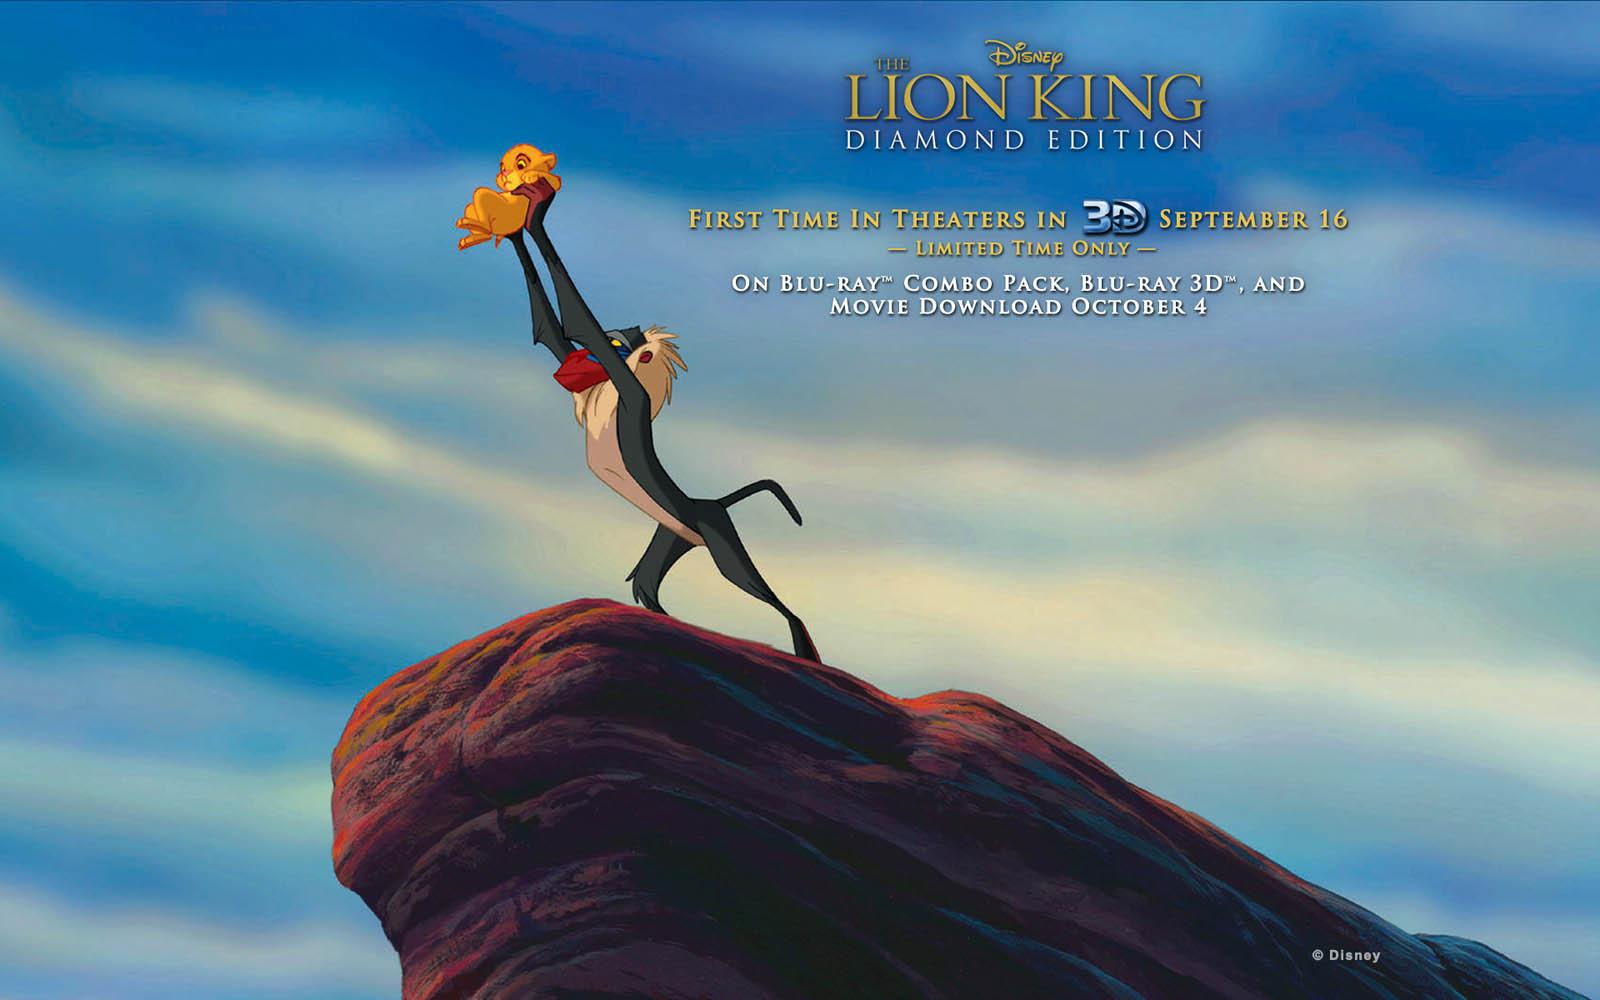 http://4.bp.blogspot.com/-BdDrCWHGxjc/UQuxyMAqyvI/AAAAAAAASJg/XuM-RJ4VBK8/s1600/The+Lion+King+Wallpapers+04.jpg